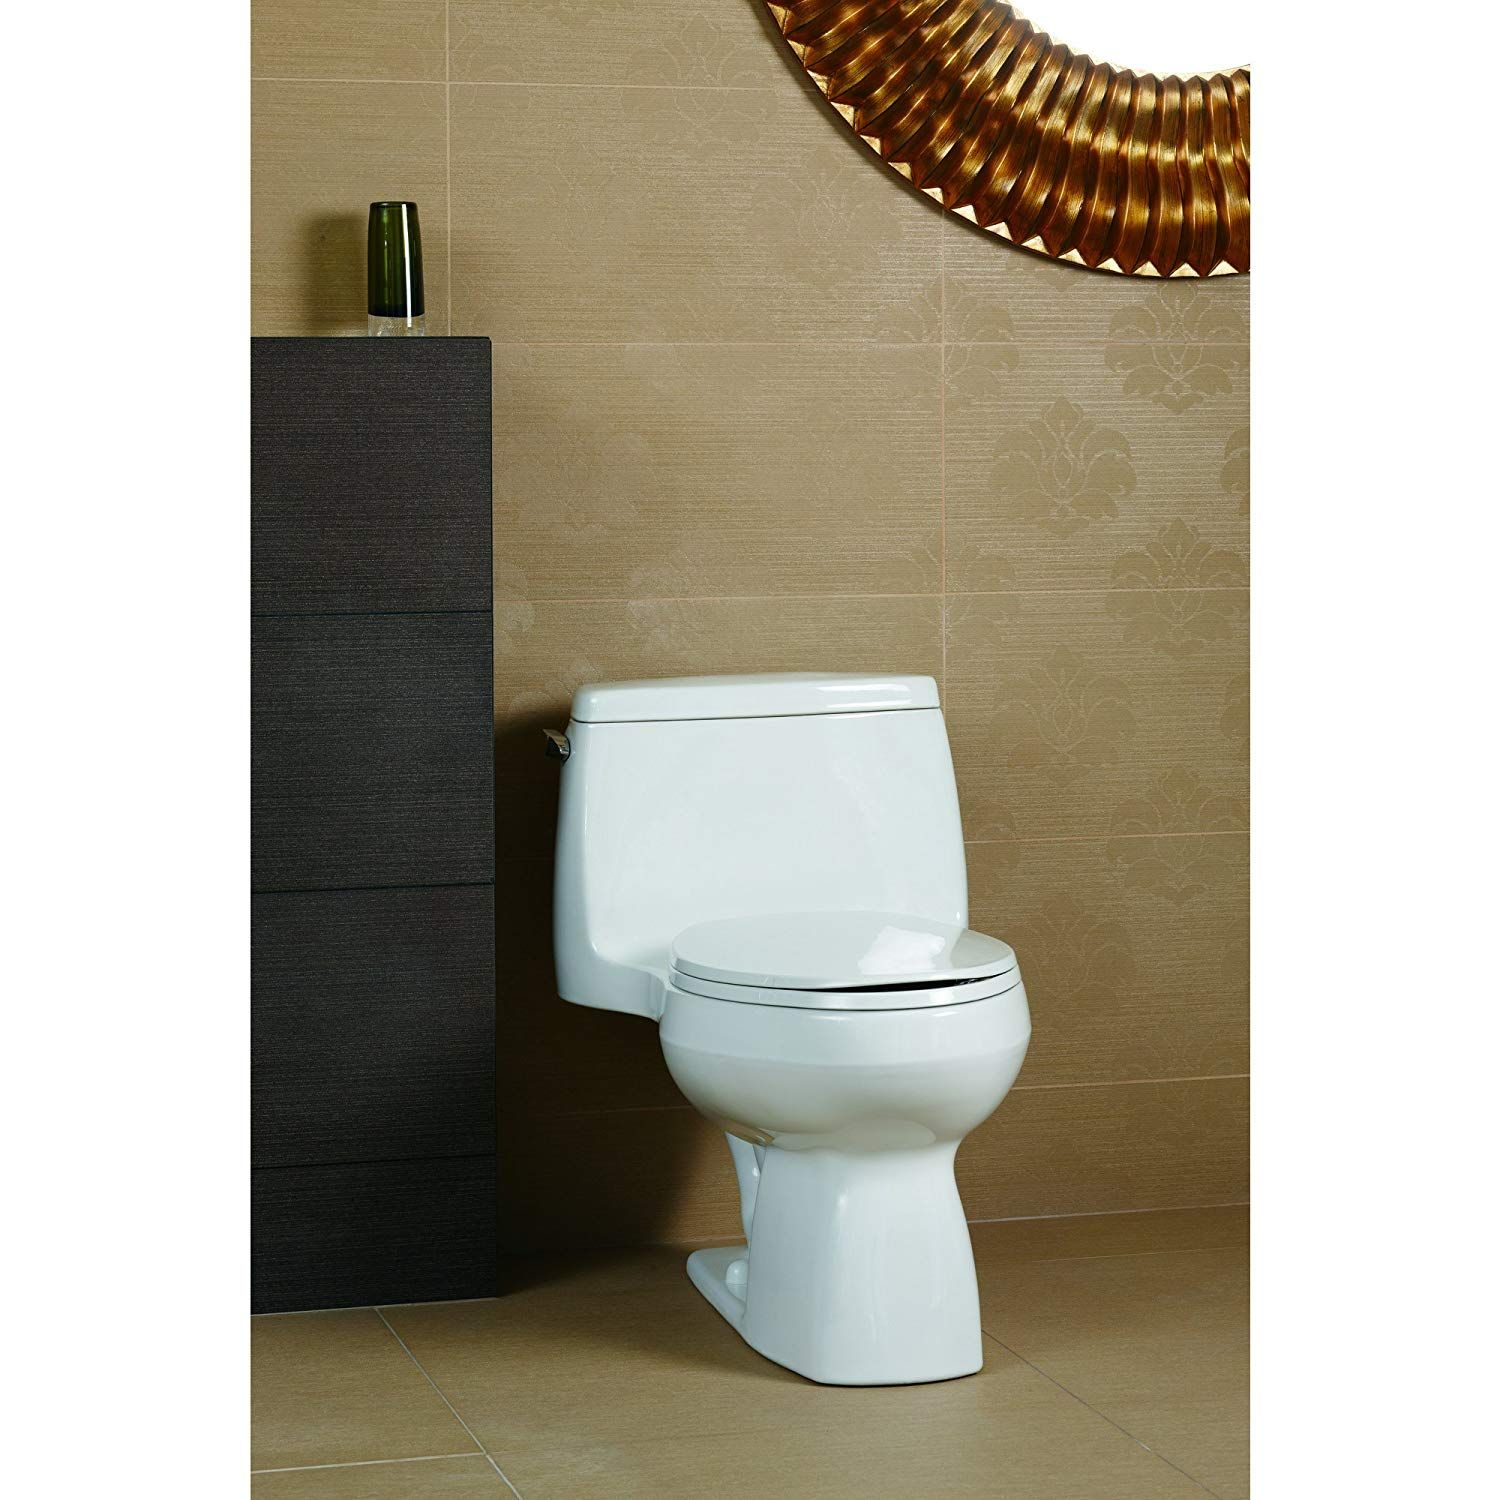 Prime This Kohler 3810 0 Has Some Amazing Features With Its Beatyapartments Chair Design Images Beatyapartmentscom